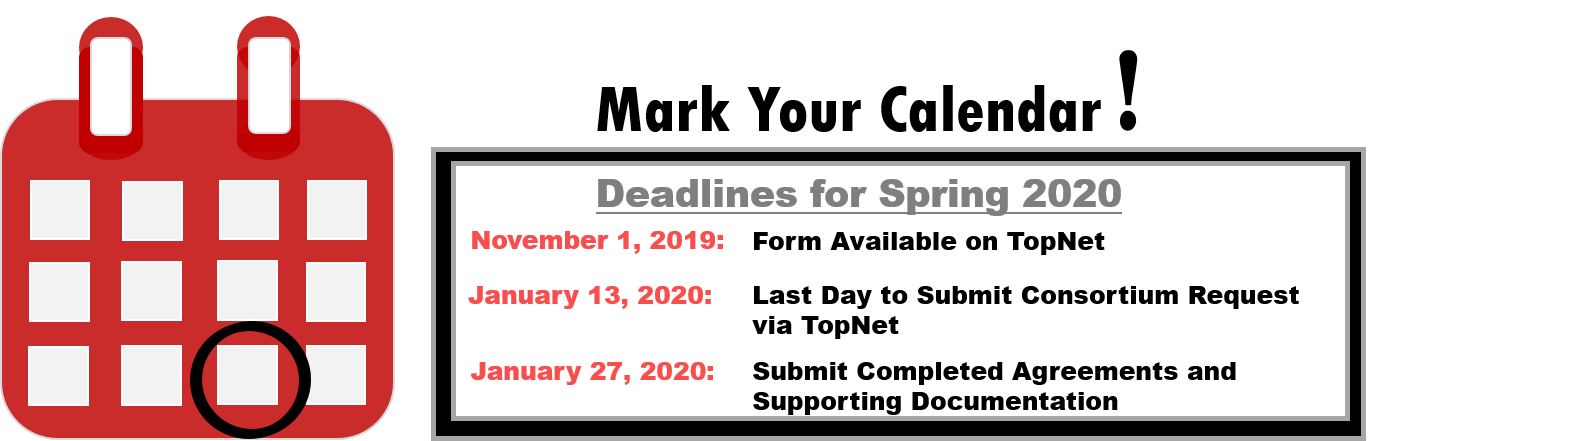 Mark Your Calendar!The form is avaialble on November 1, 2019.  Deadline for submitting Spring 2020 consortium requests is January 13, 2020. The deadline to submit completed agreements and any supporting documentation is January 27, 2020